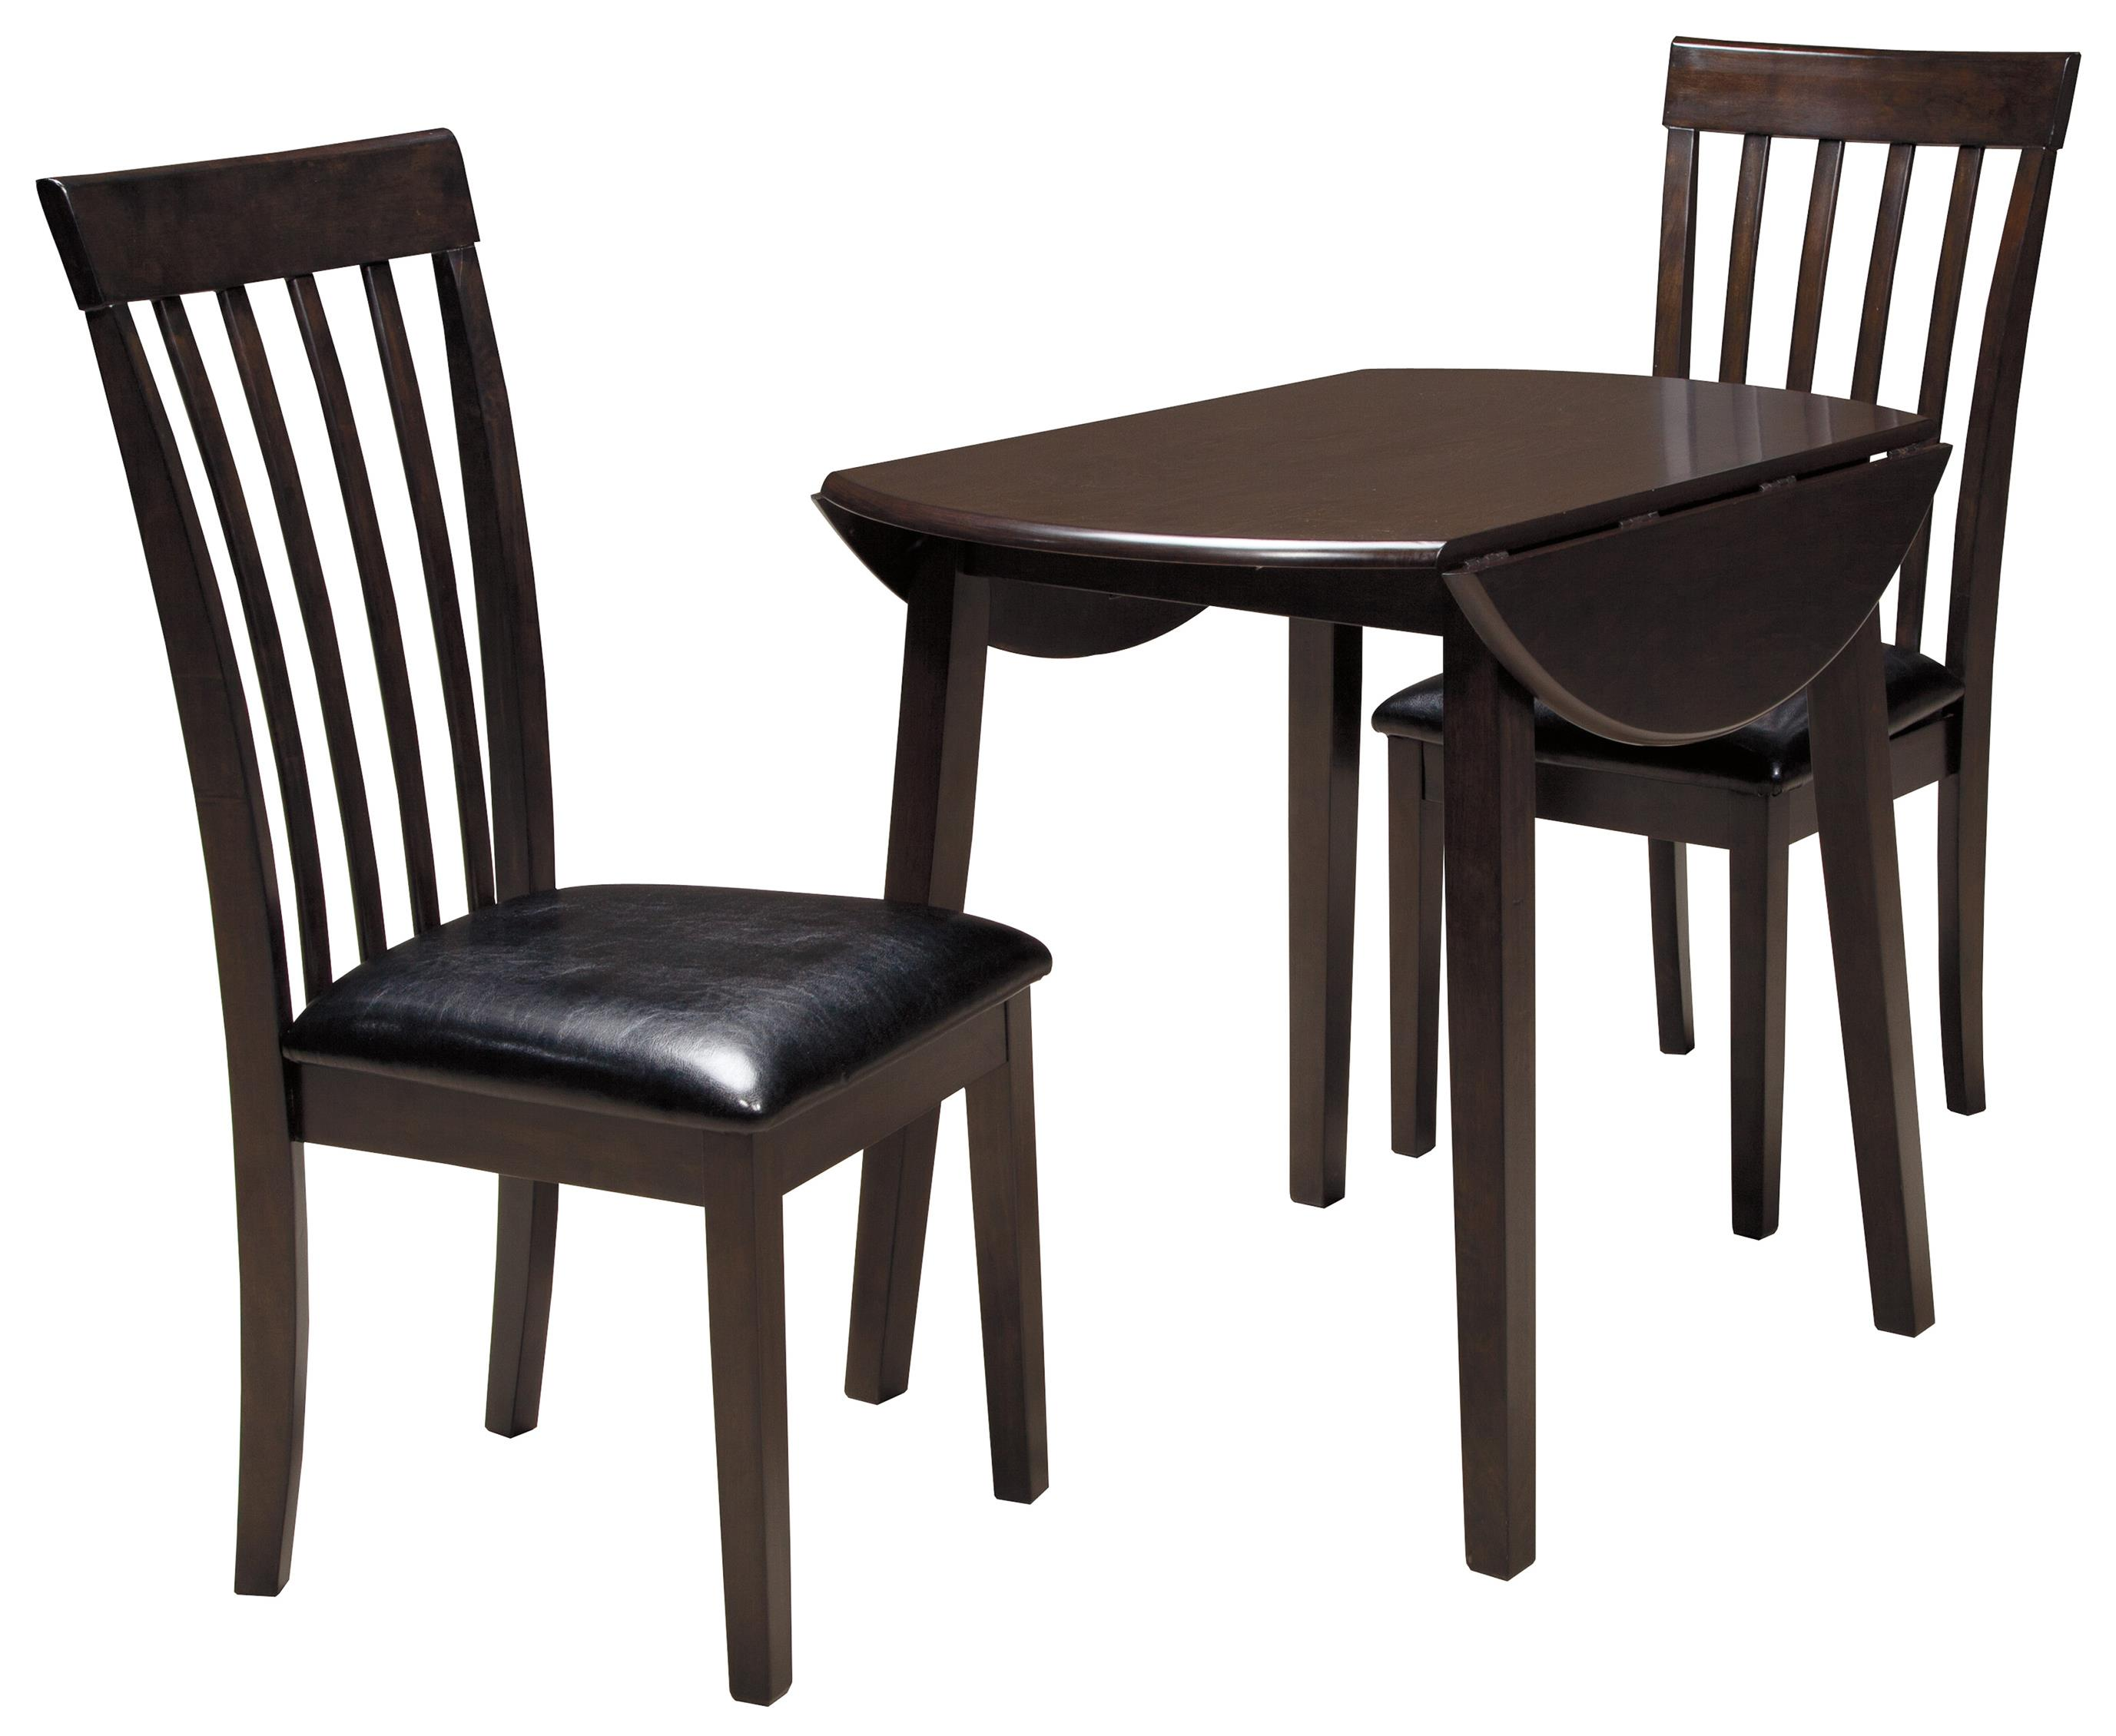 Hammis 3-Piece Round Drop Leaf Table Set by Signature Design by Ashley at Suburban Furniture